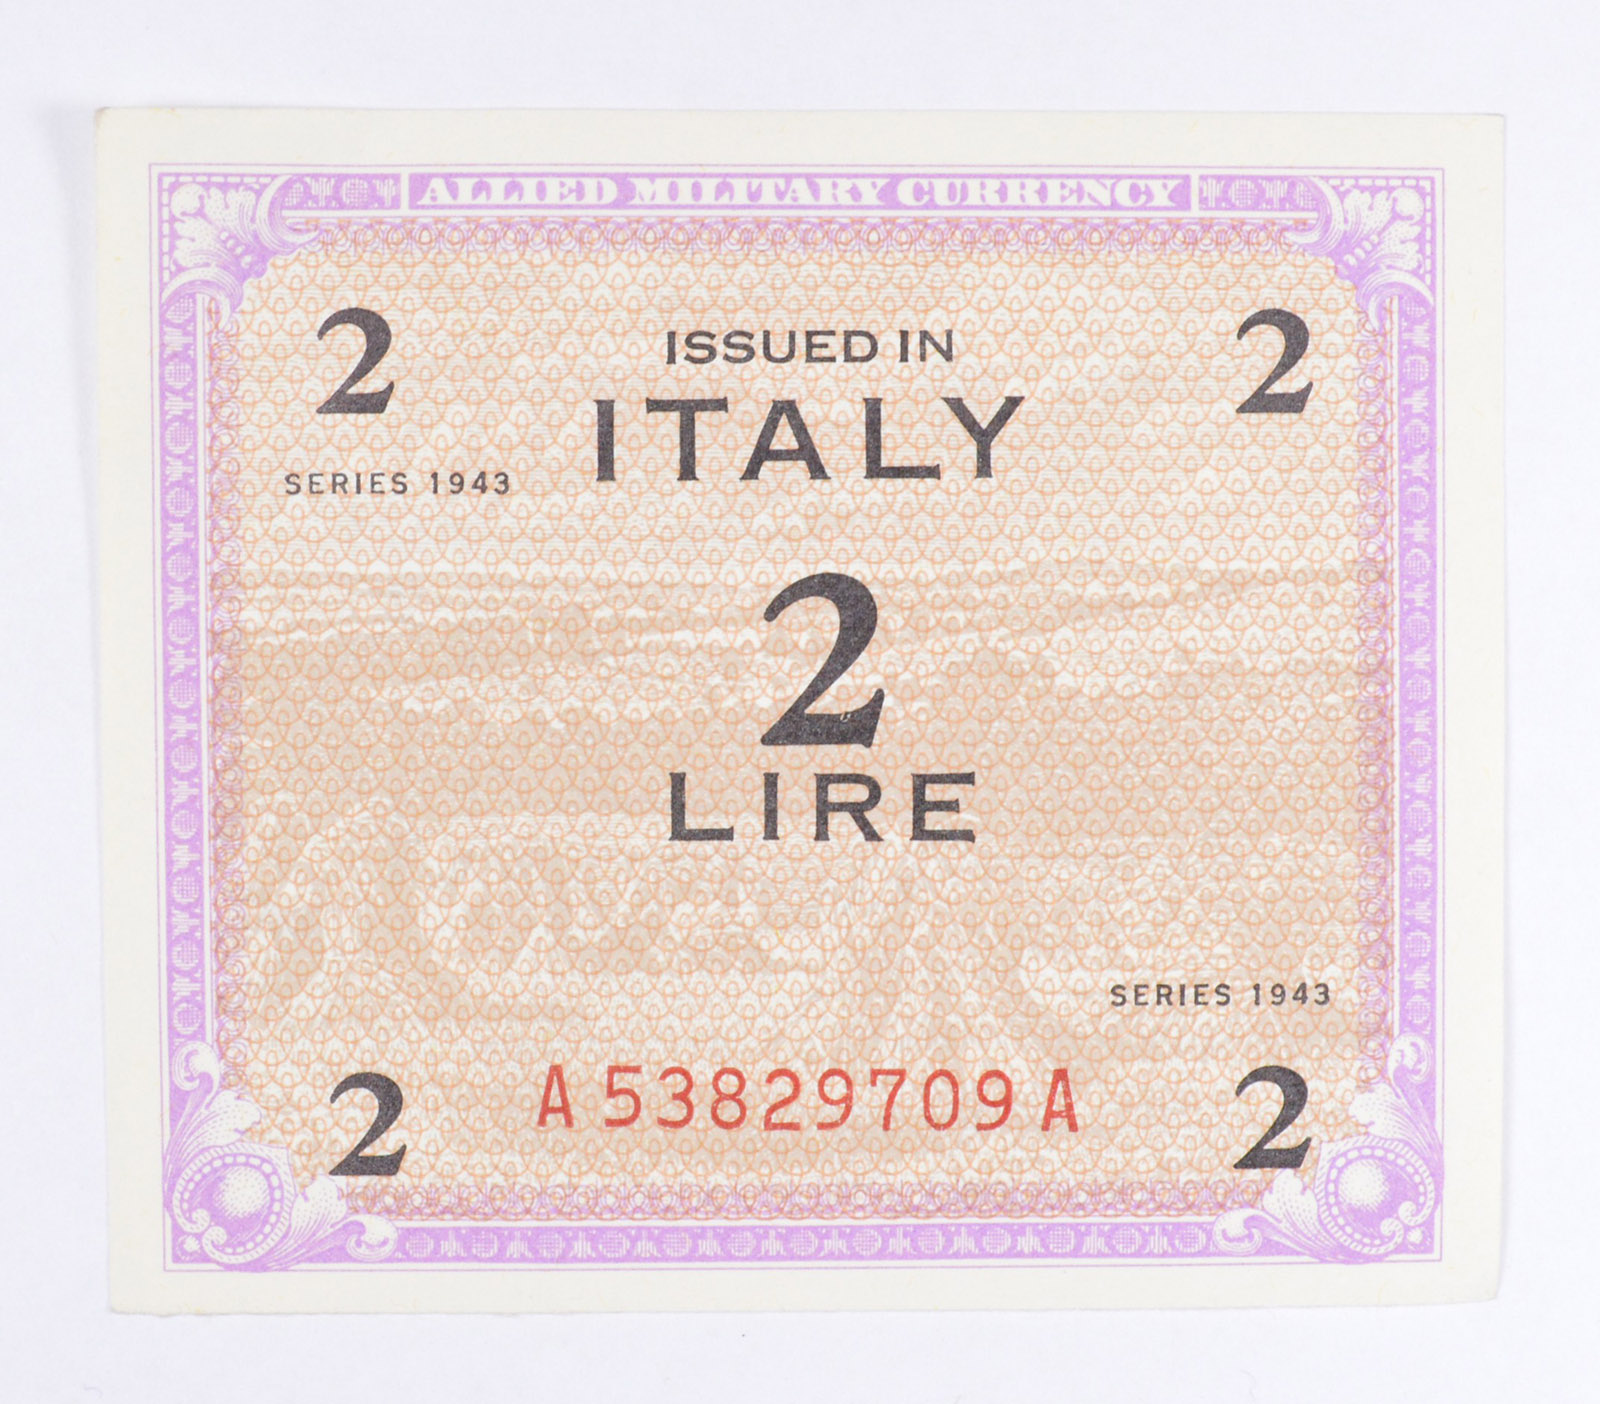 historic italian paper money currency interesting note from italy